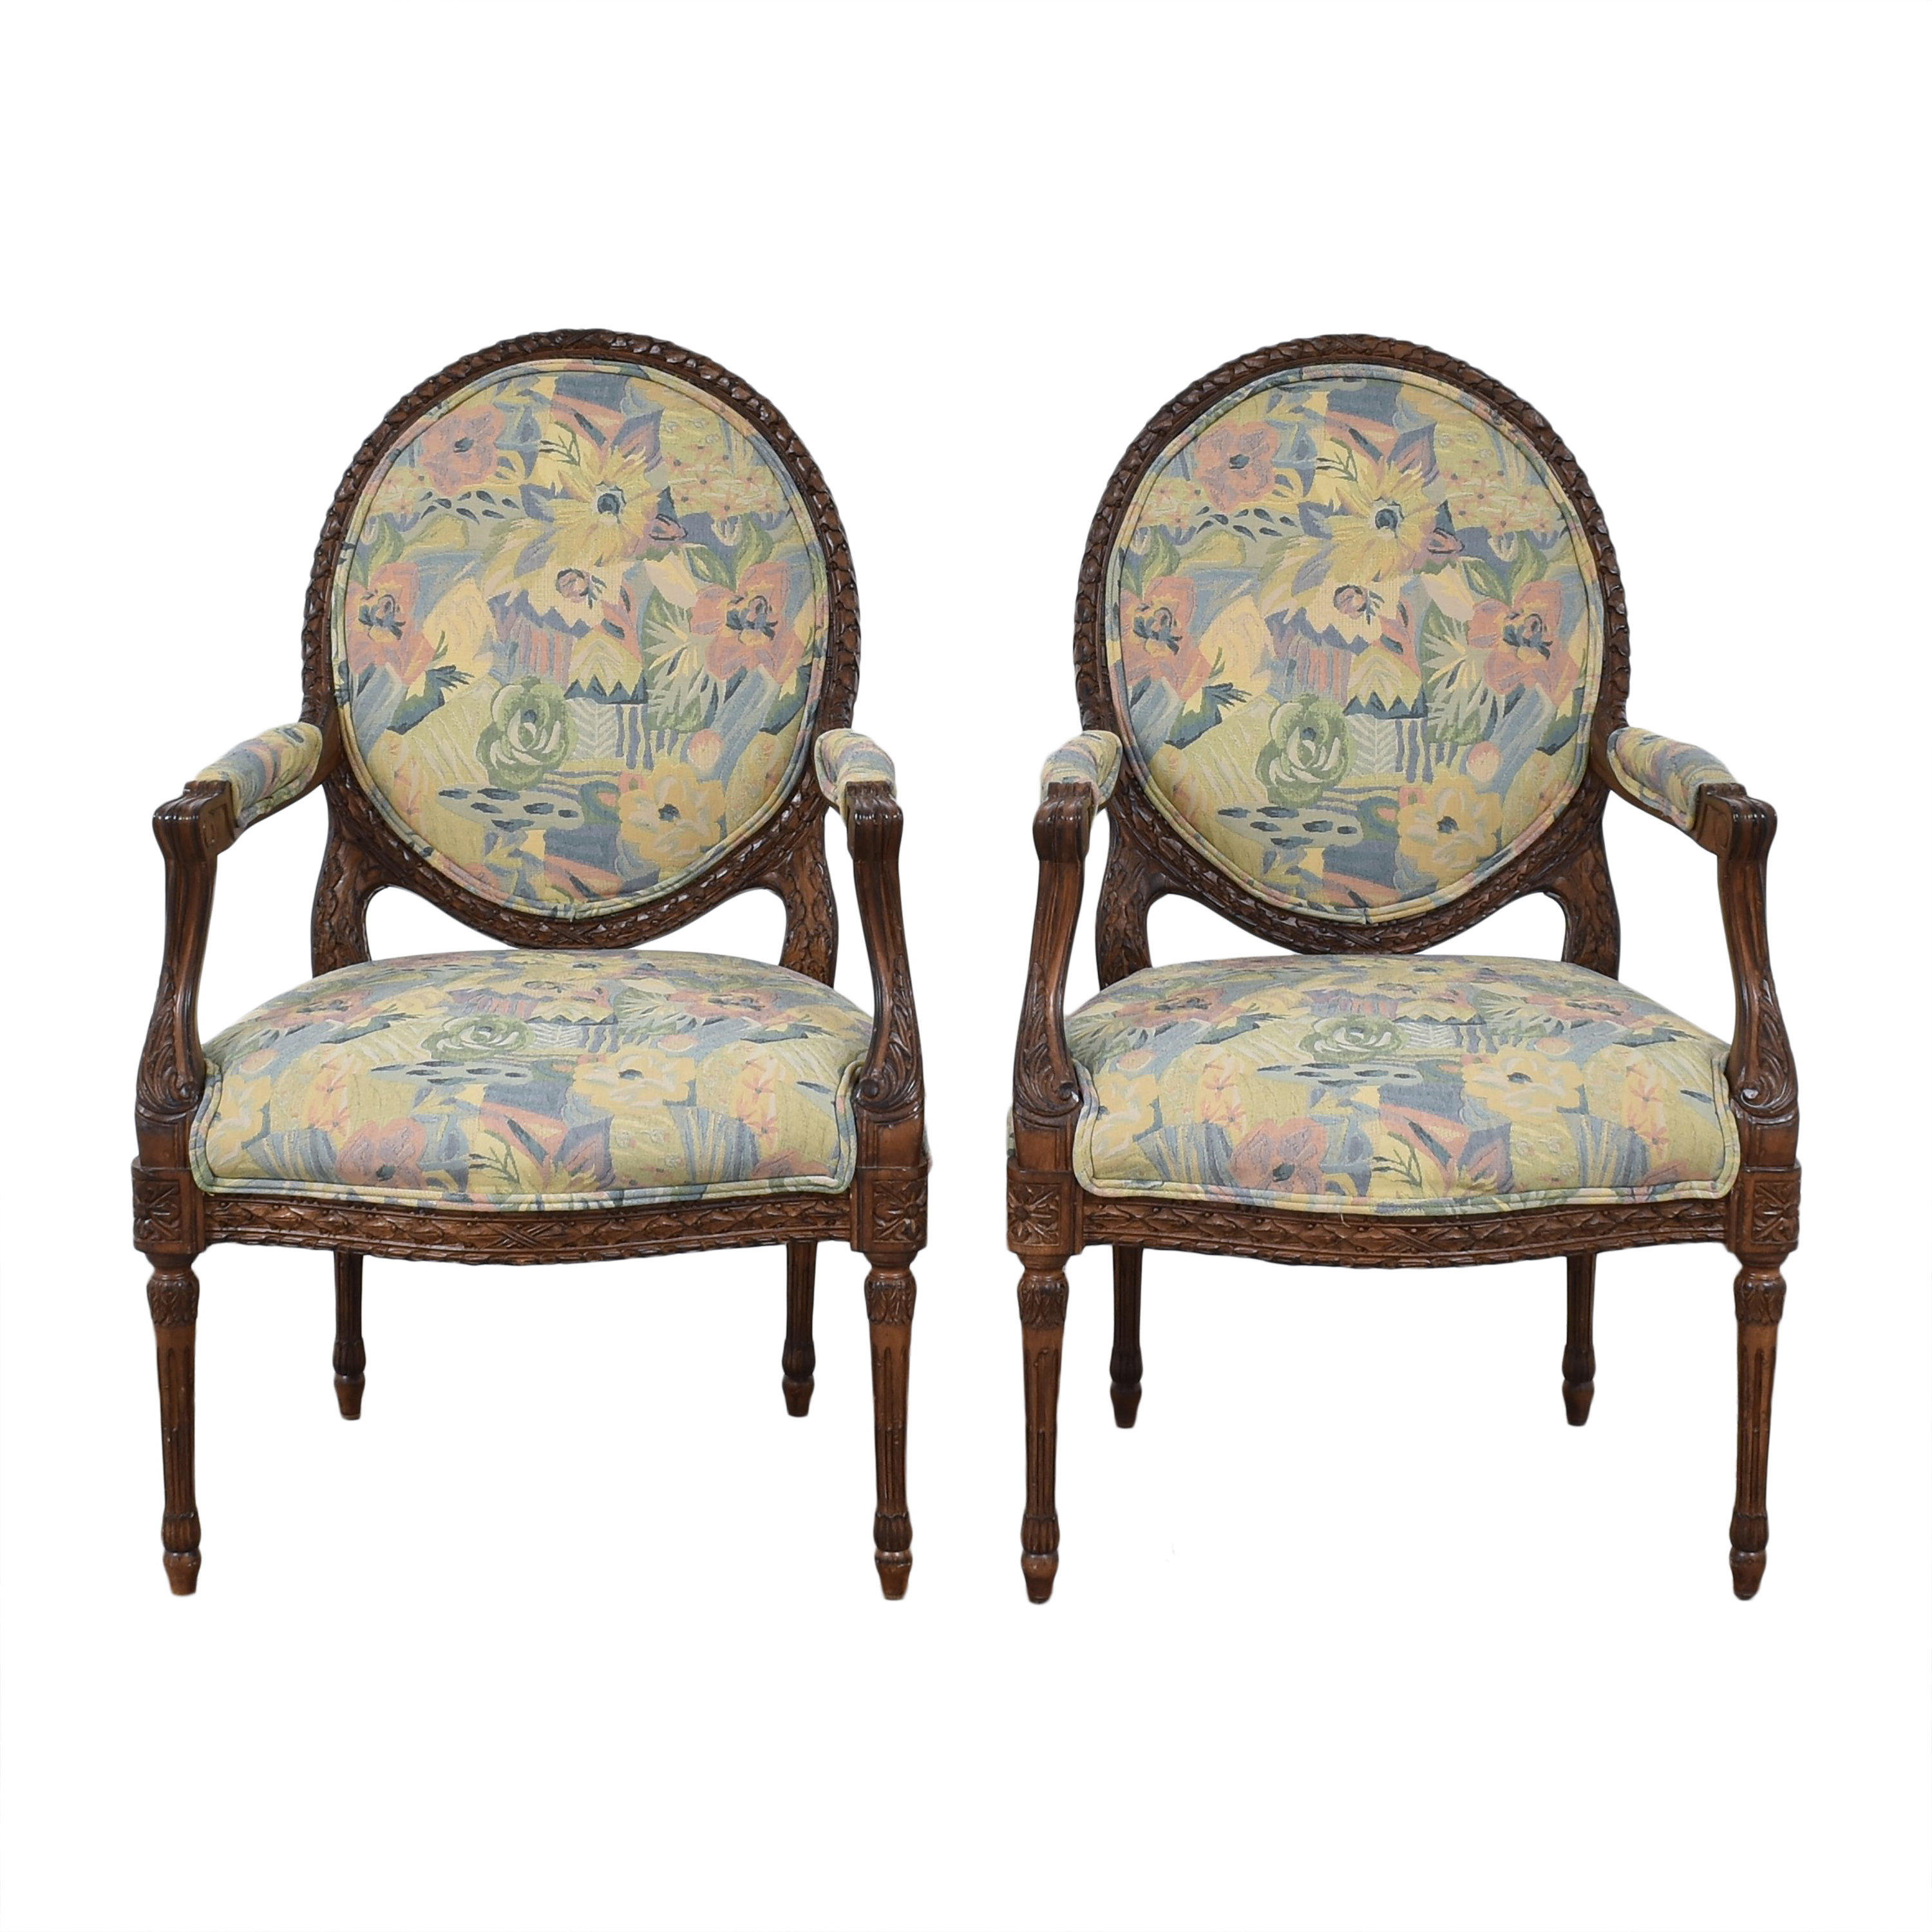 Meyer Gunther Martini Meyer Gunther Martini Carved Arm Chairs coupon